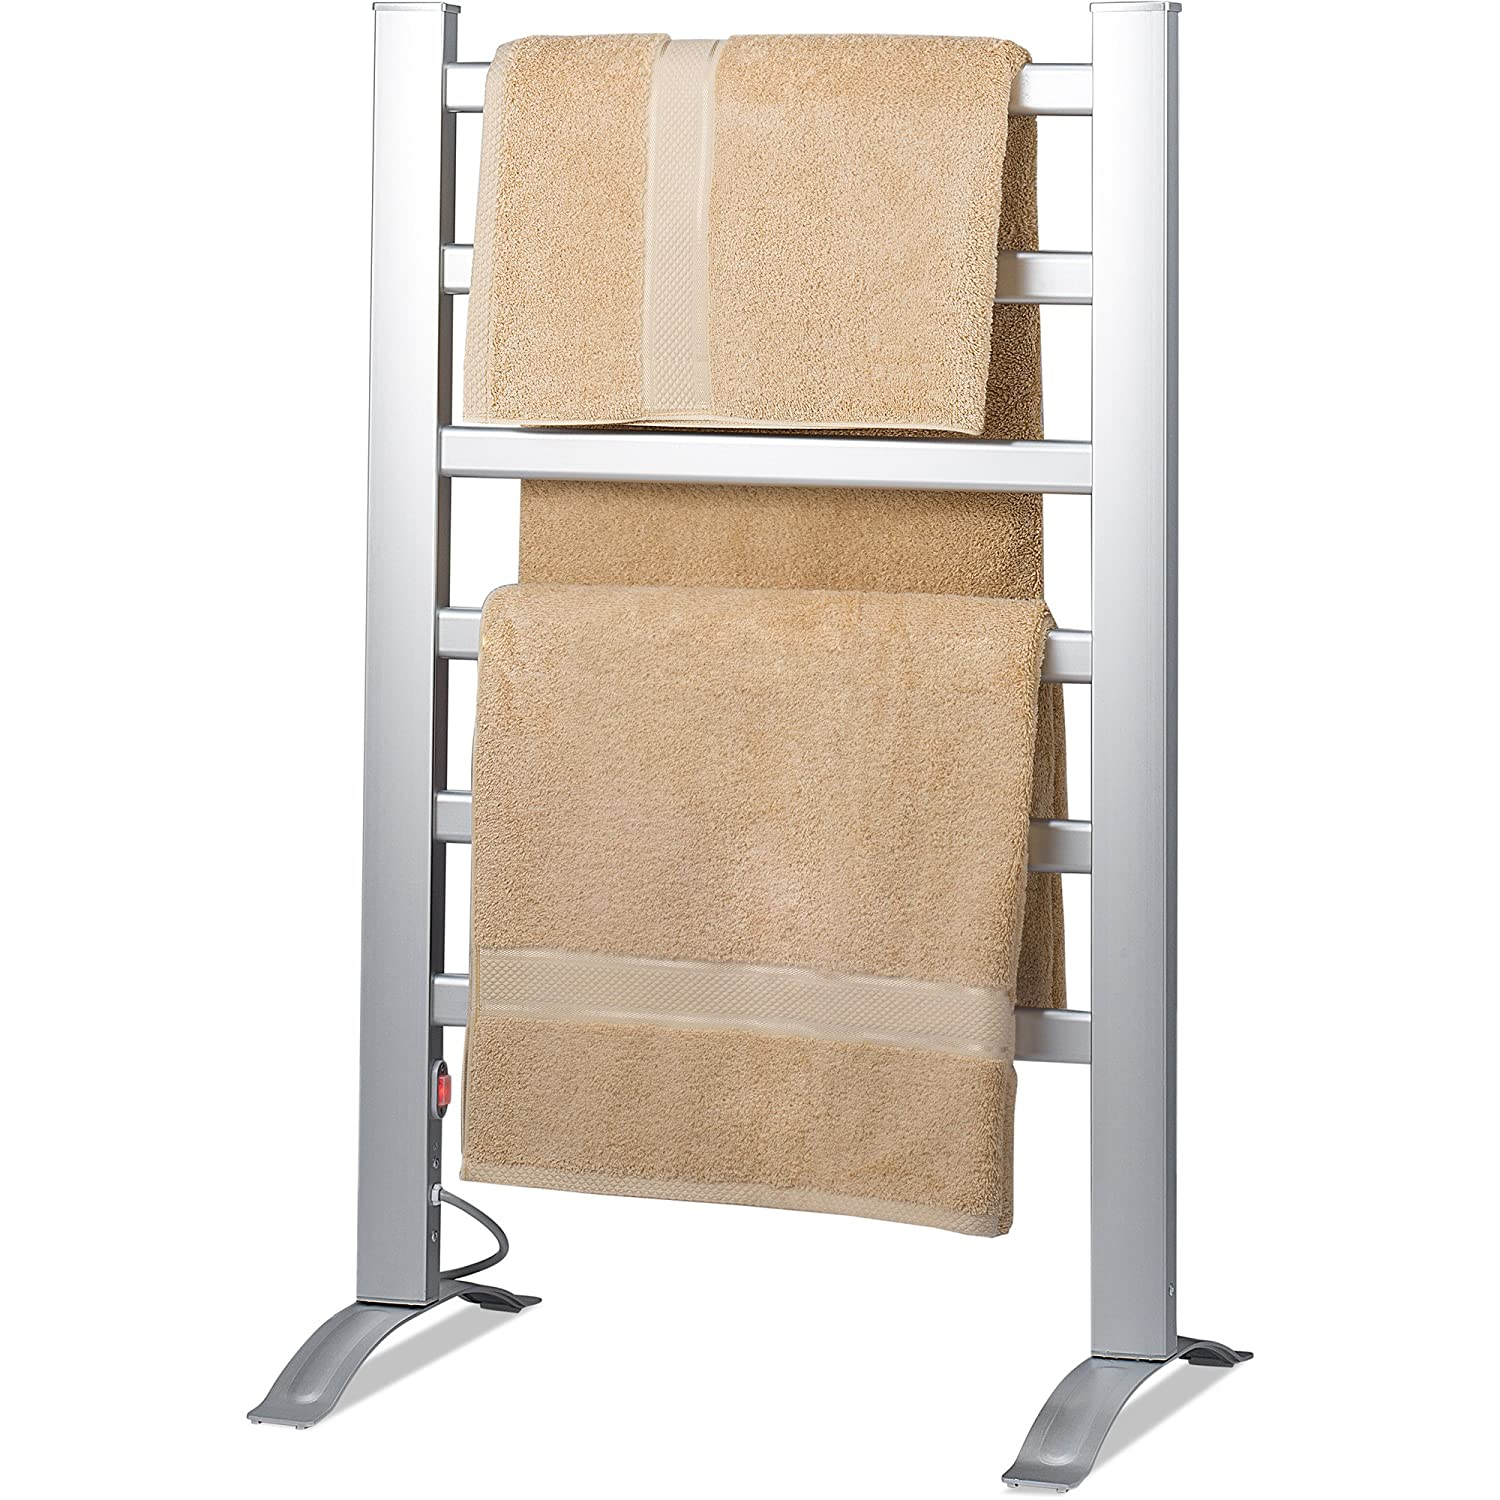 bath towel warmers amazon com knox 6 bar electric aluminum towel warmer